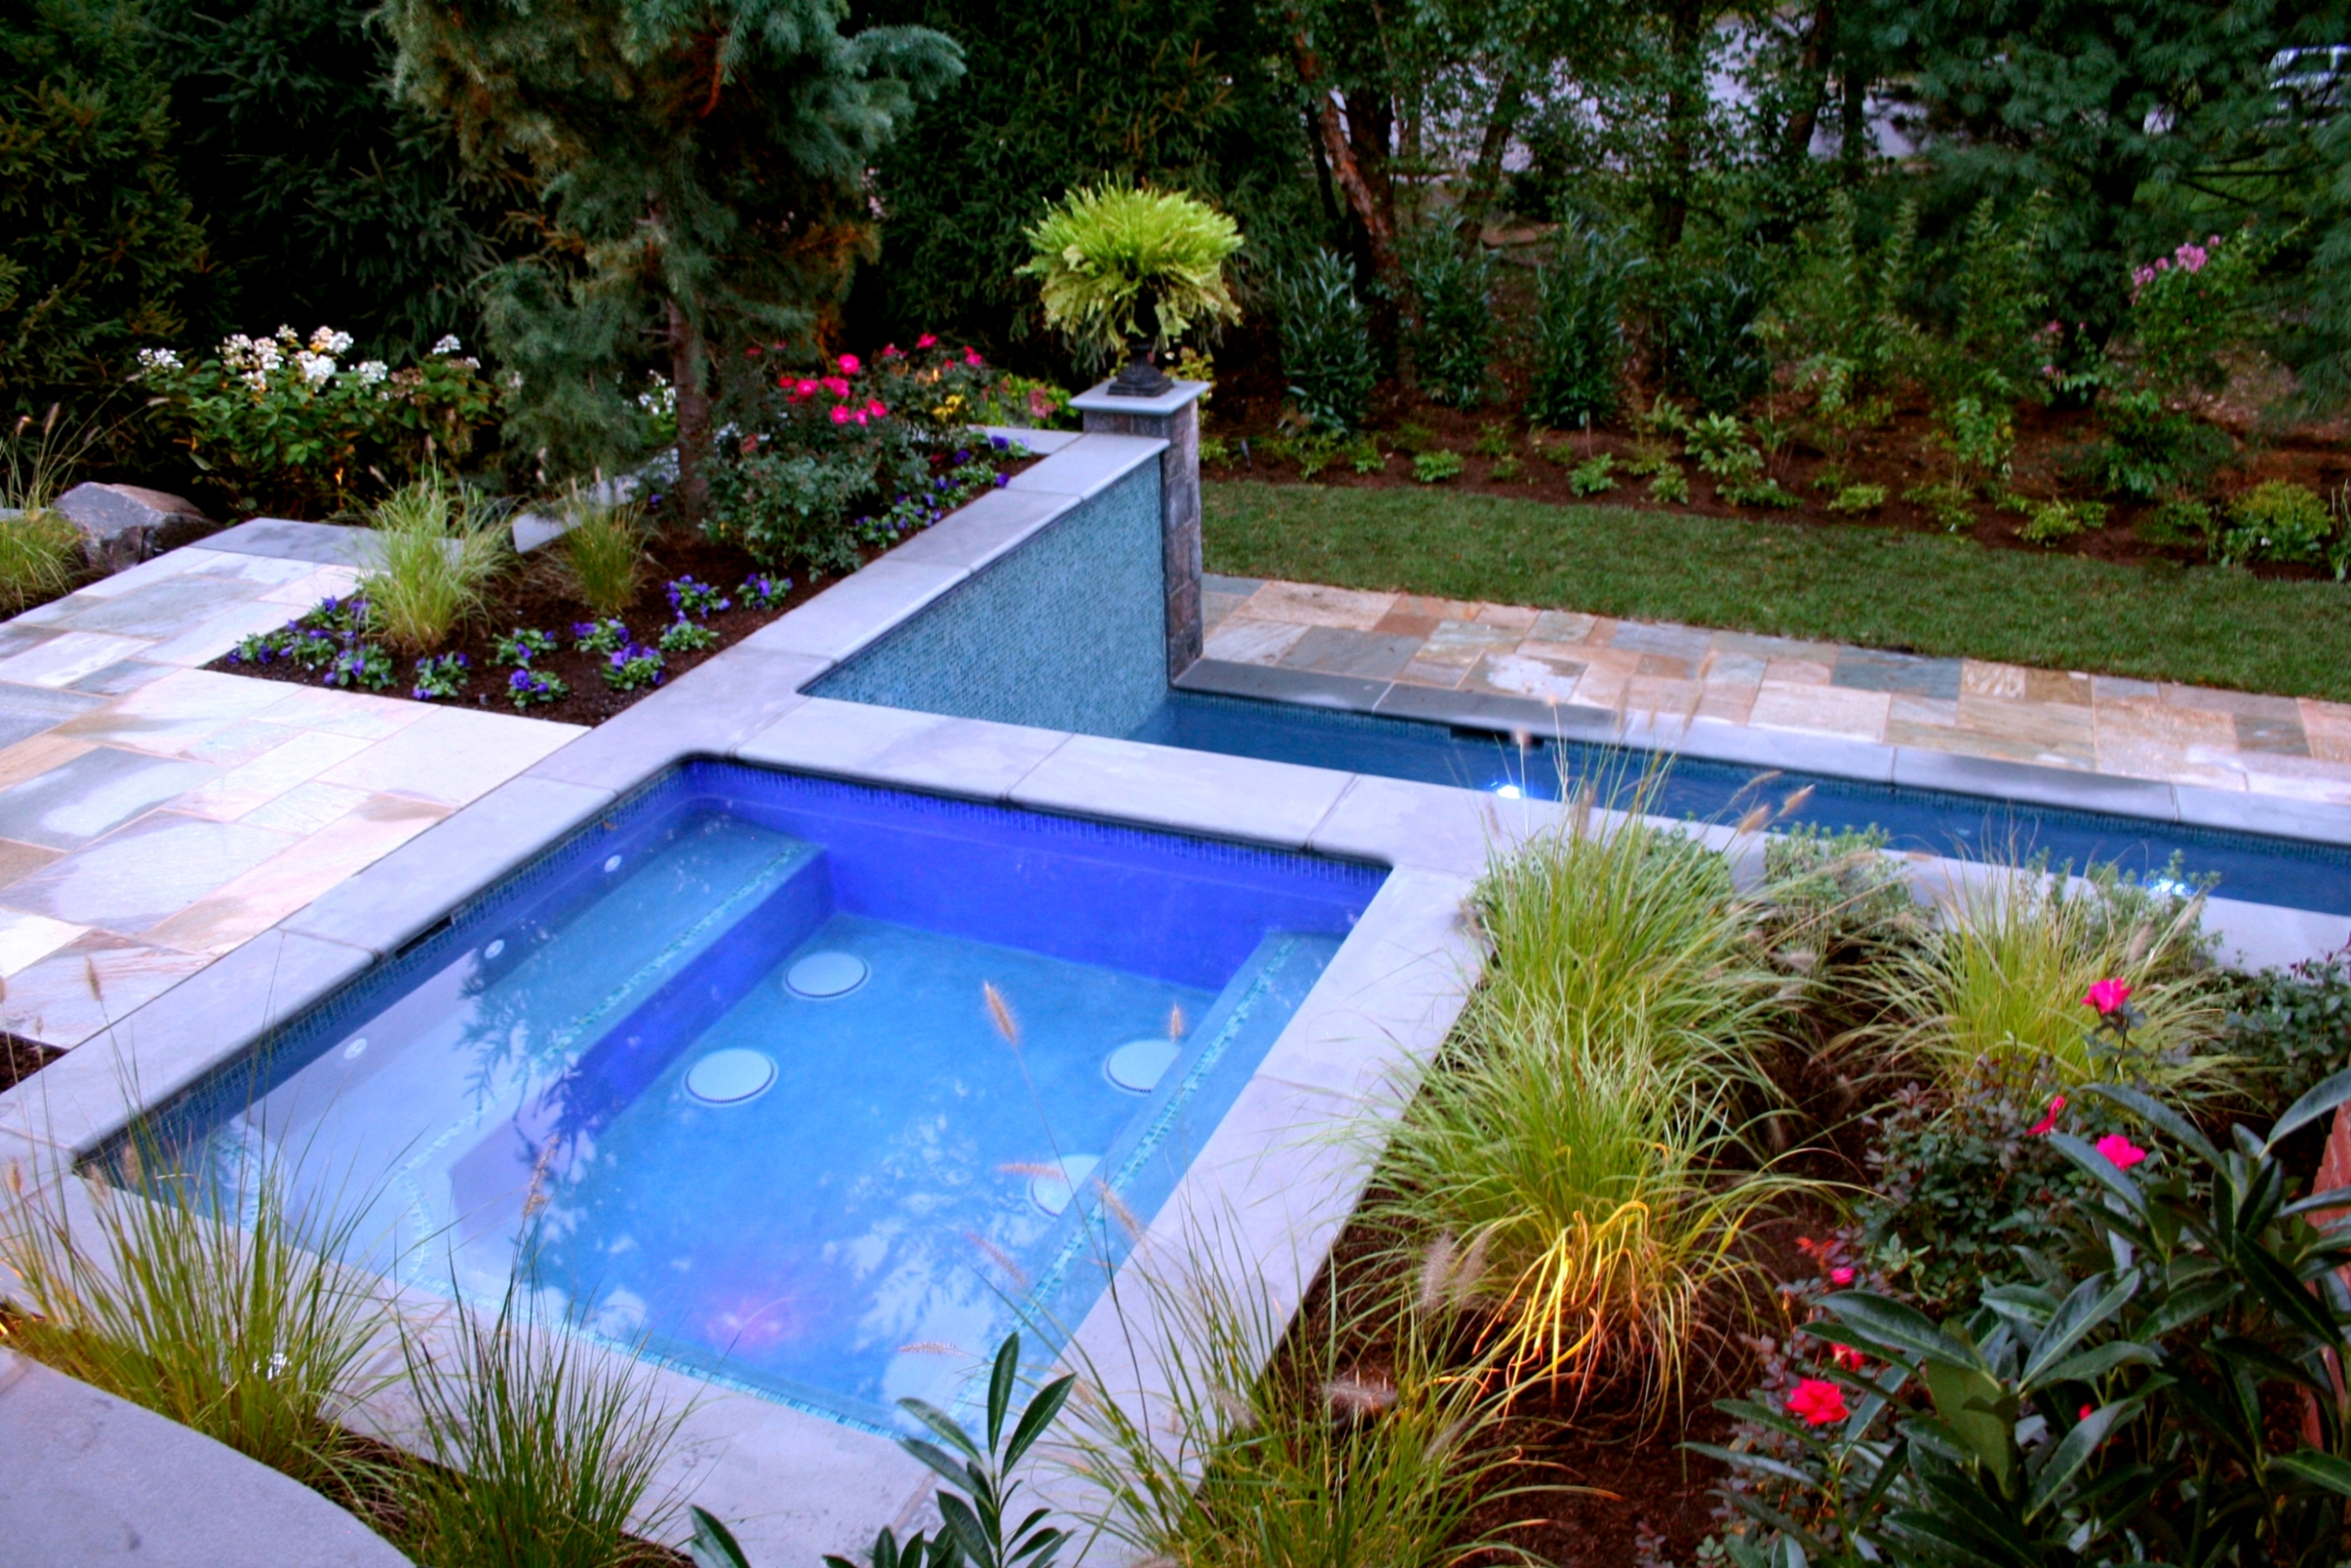 New Jersey Landscape Architects Earn Five Awards for Pools ...